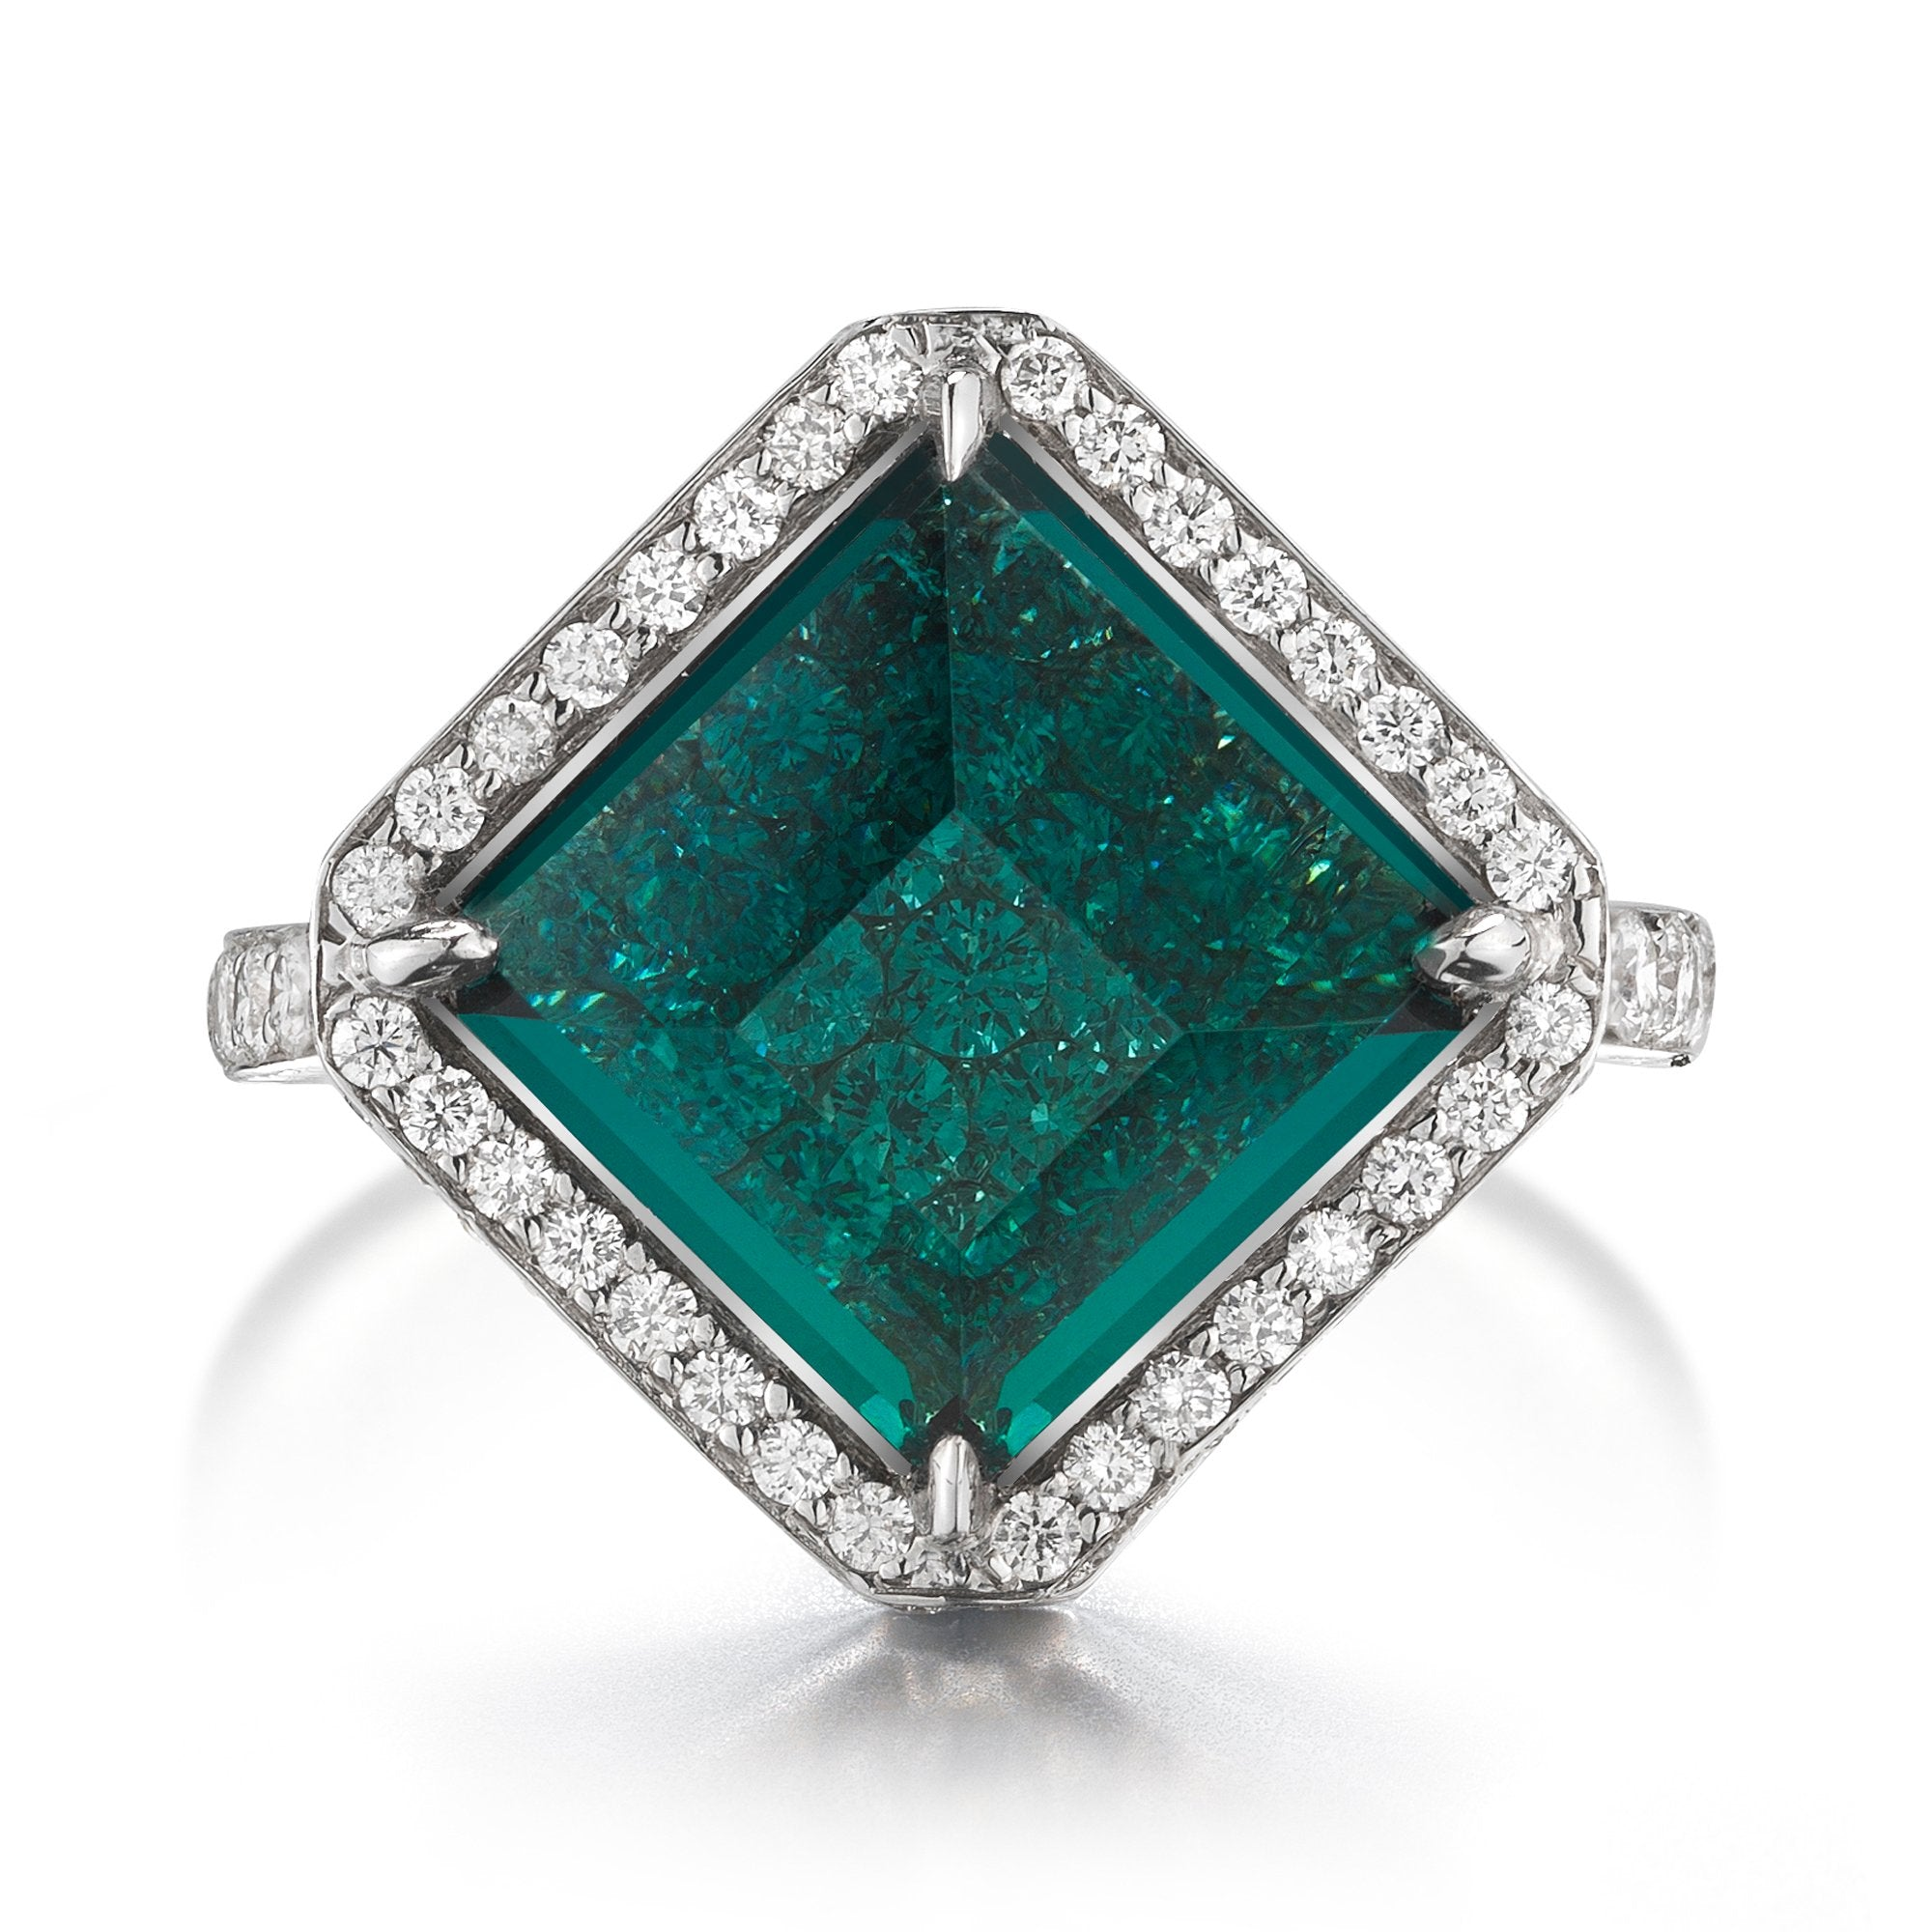 sale org cabochon jewelry at unisex diamond emerald ring for id emeral cocktail and rings carat j